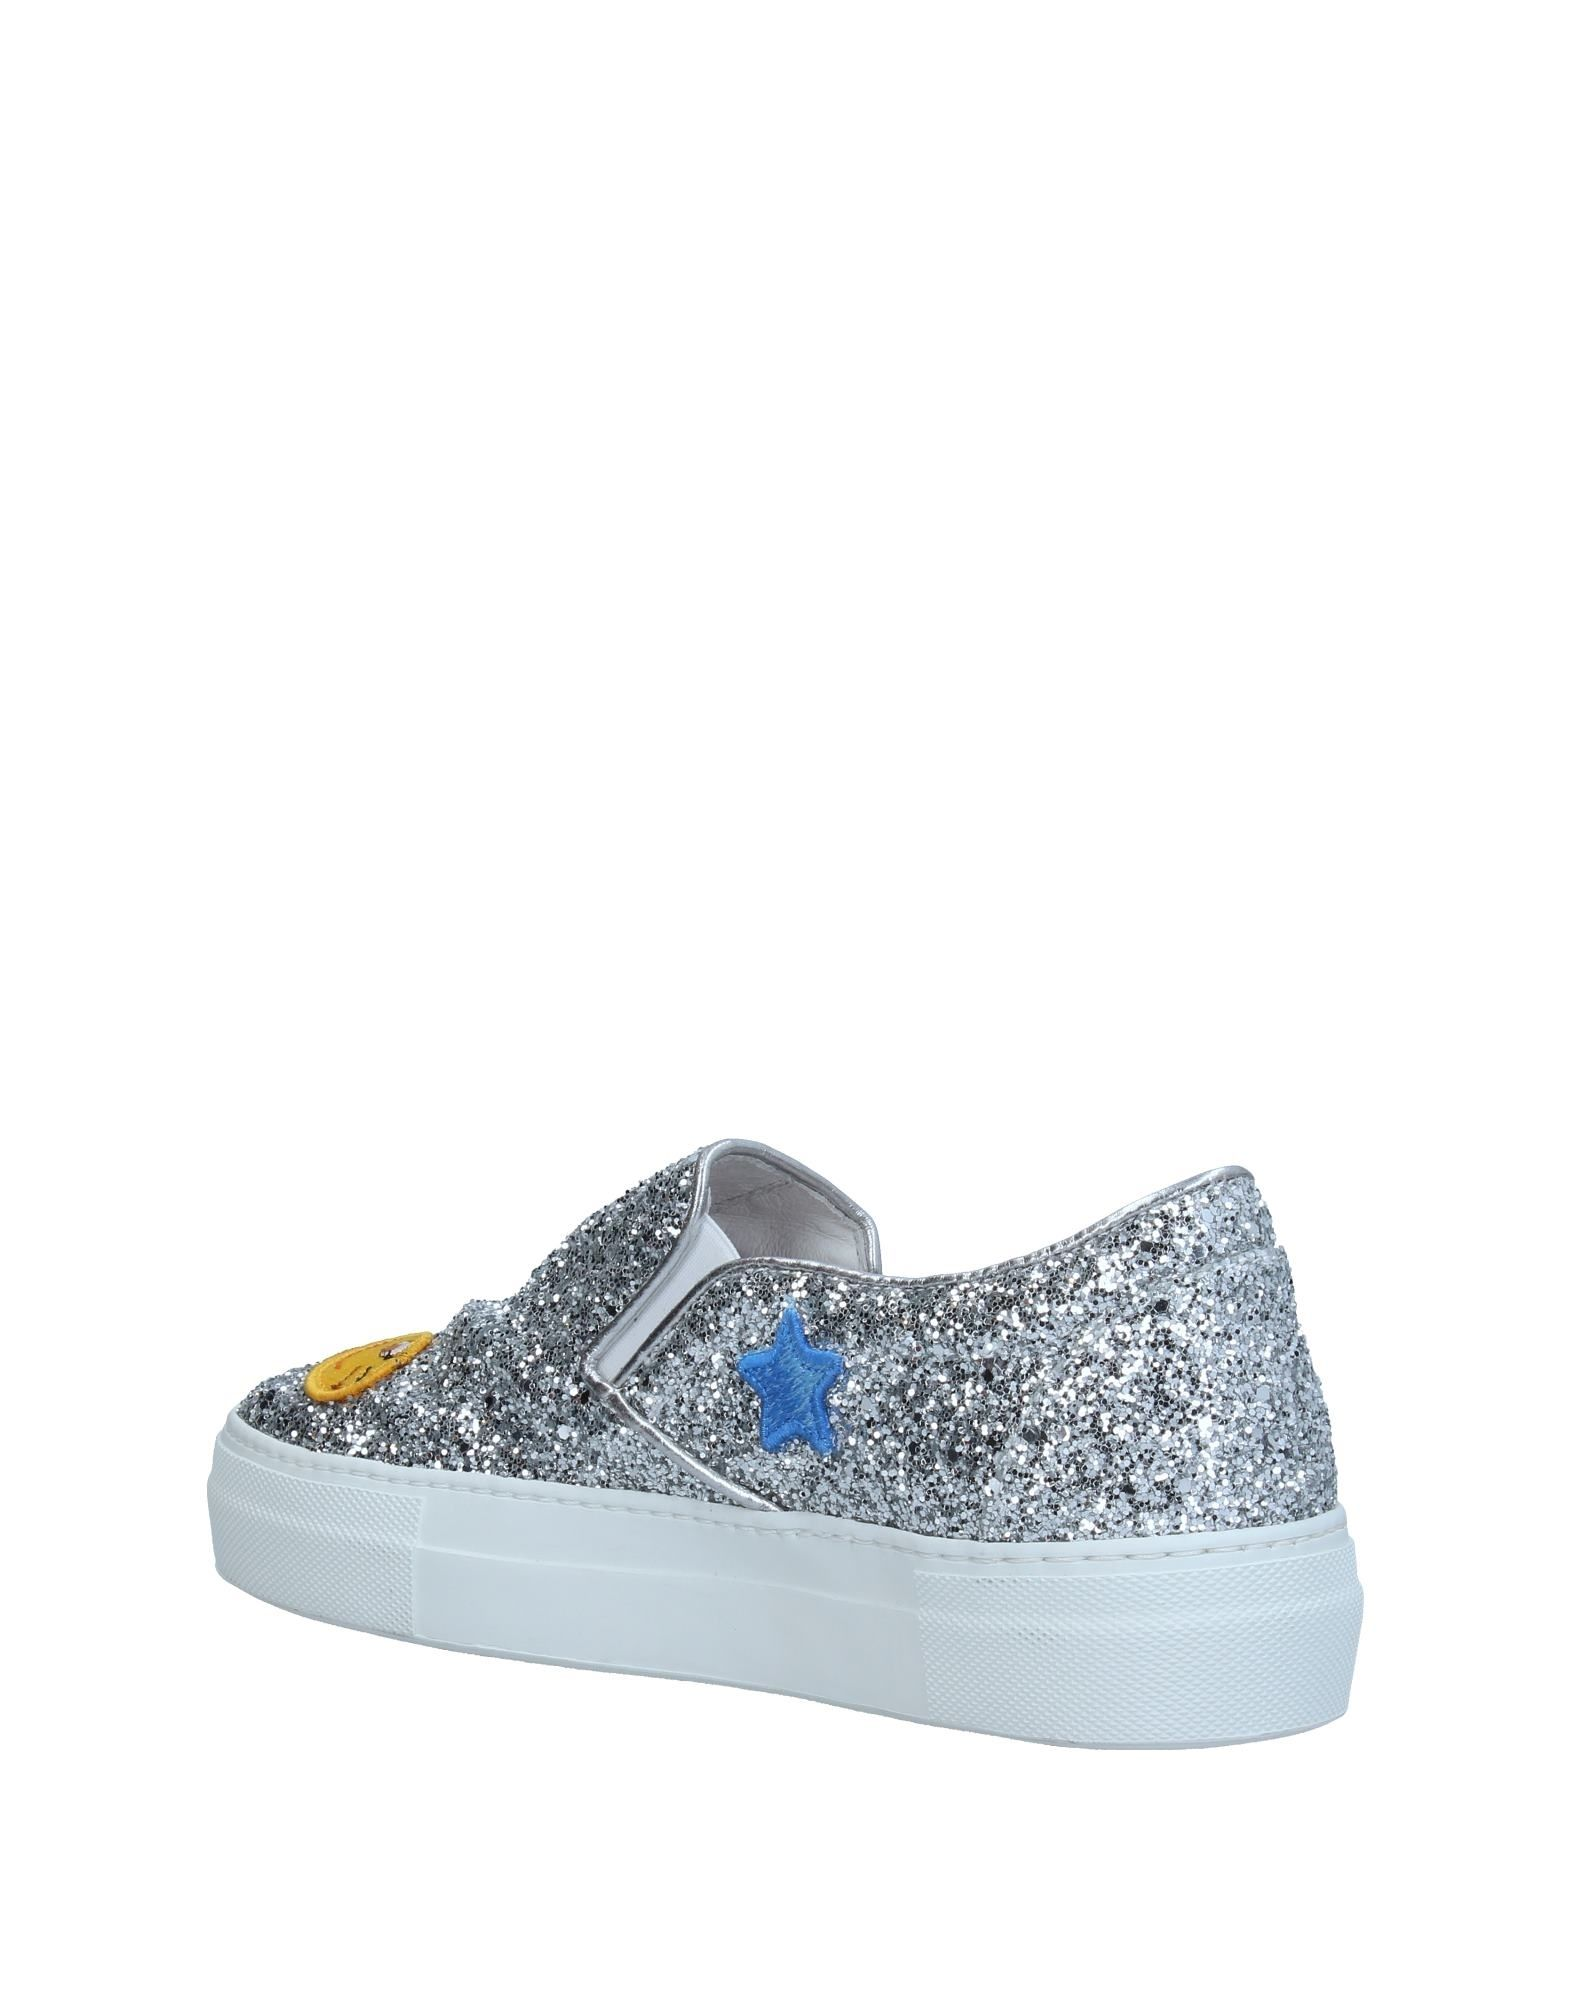 Sneakers Simon Scott Femme - Sneakers Simon Scott sur